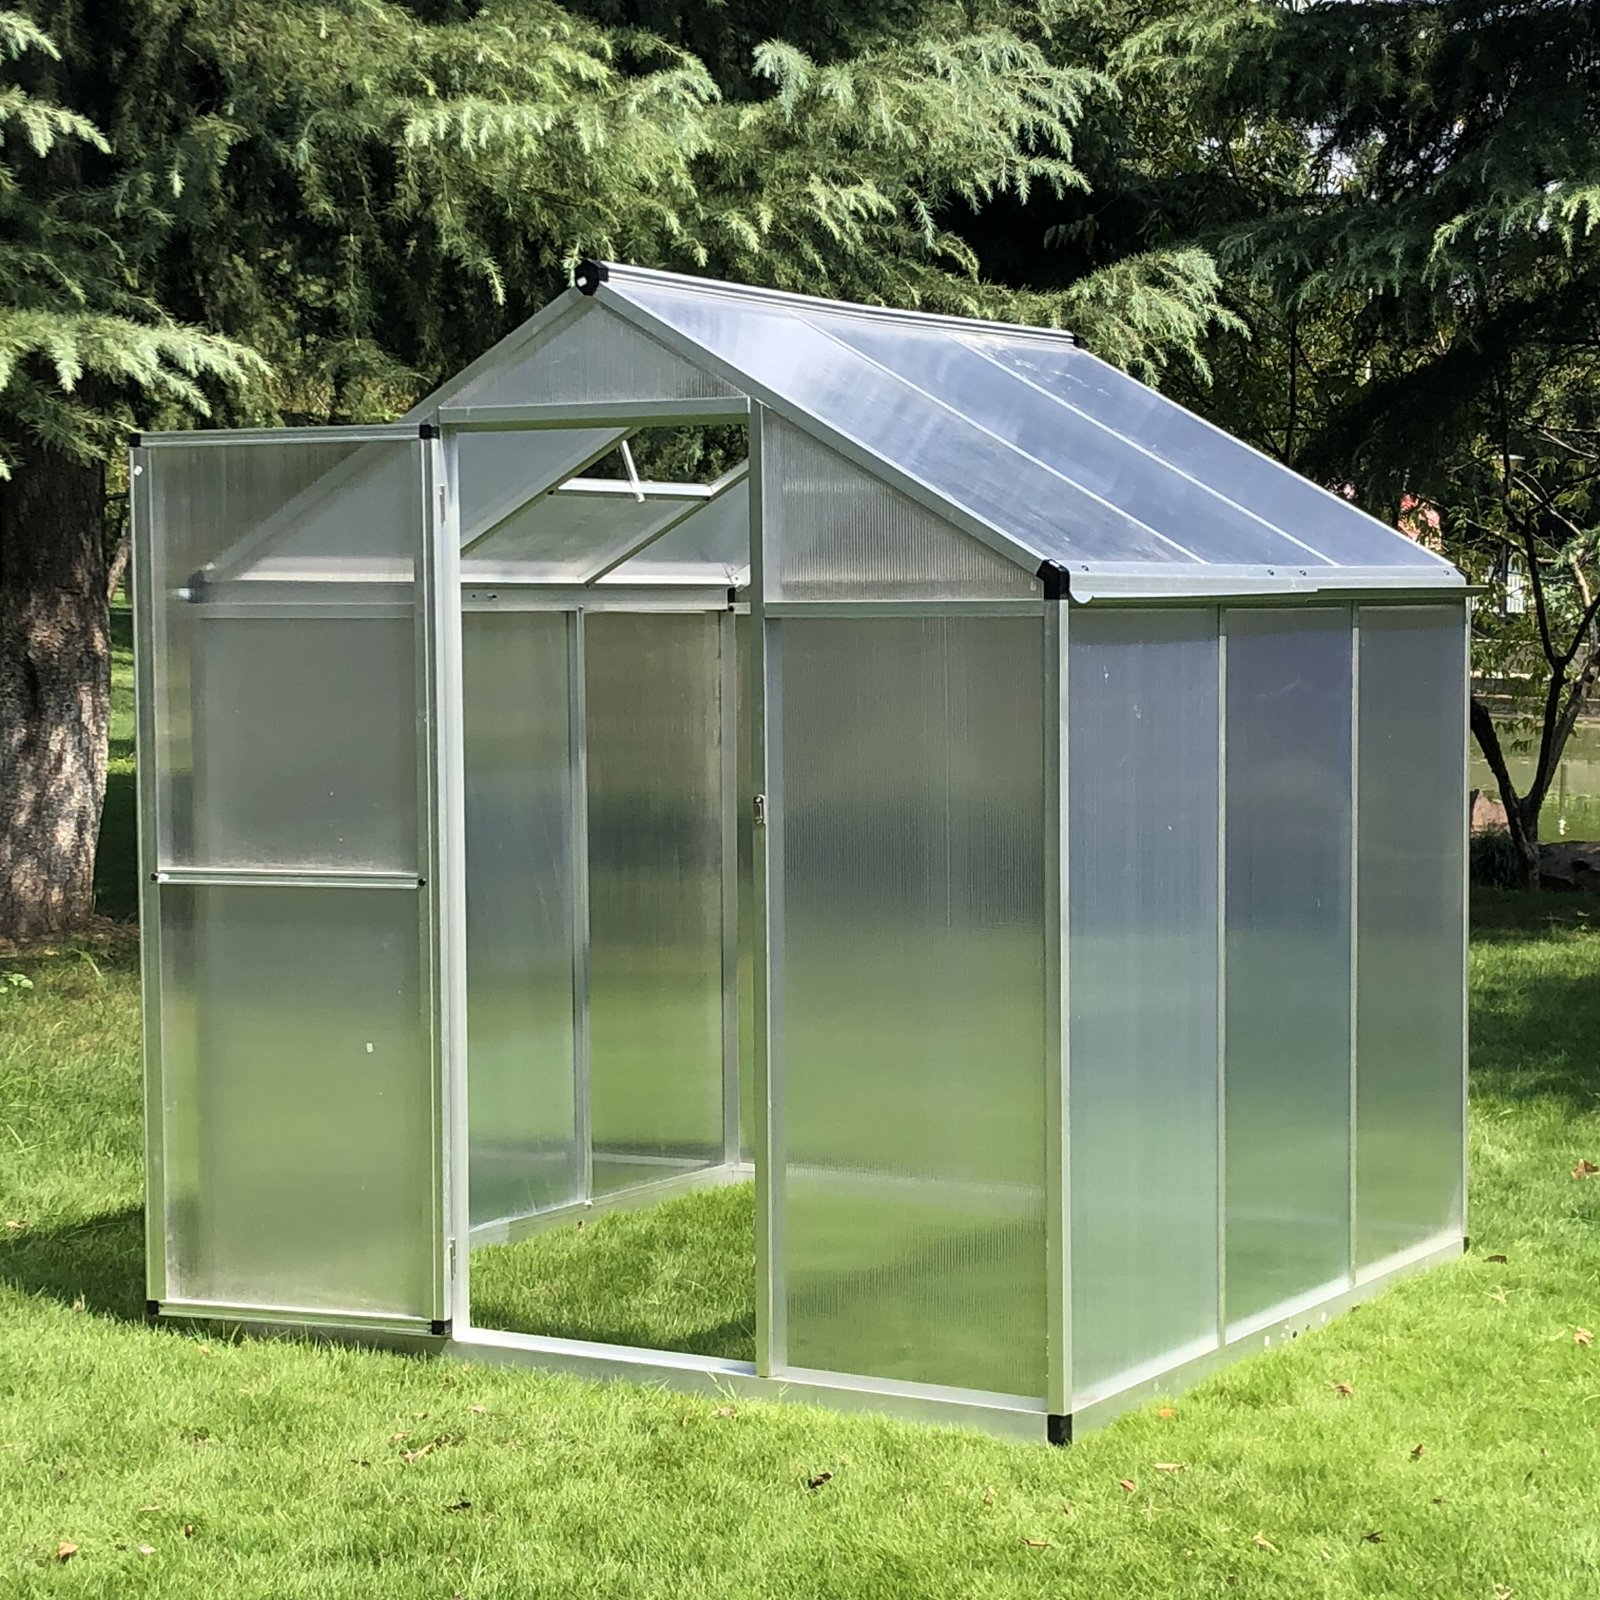 Outsunny 182x190x195cm Clear Polycarbonate Sheet Walk-In Greenhouse